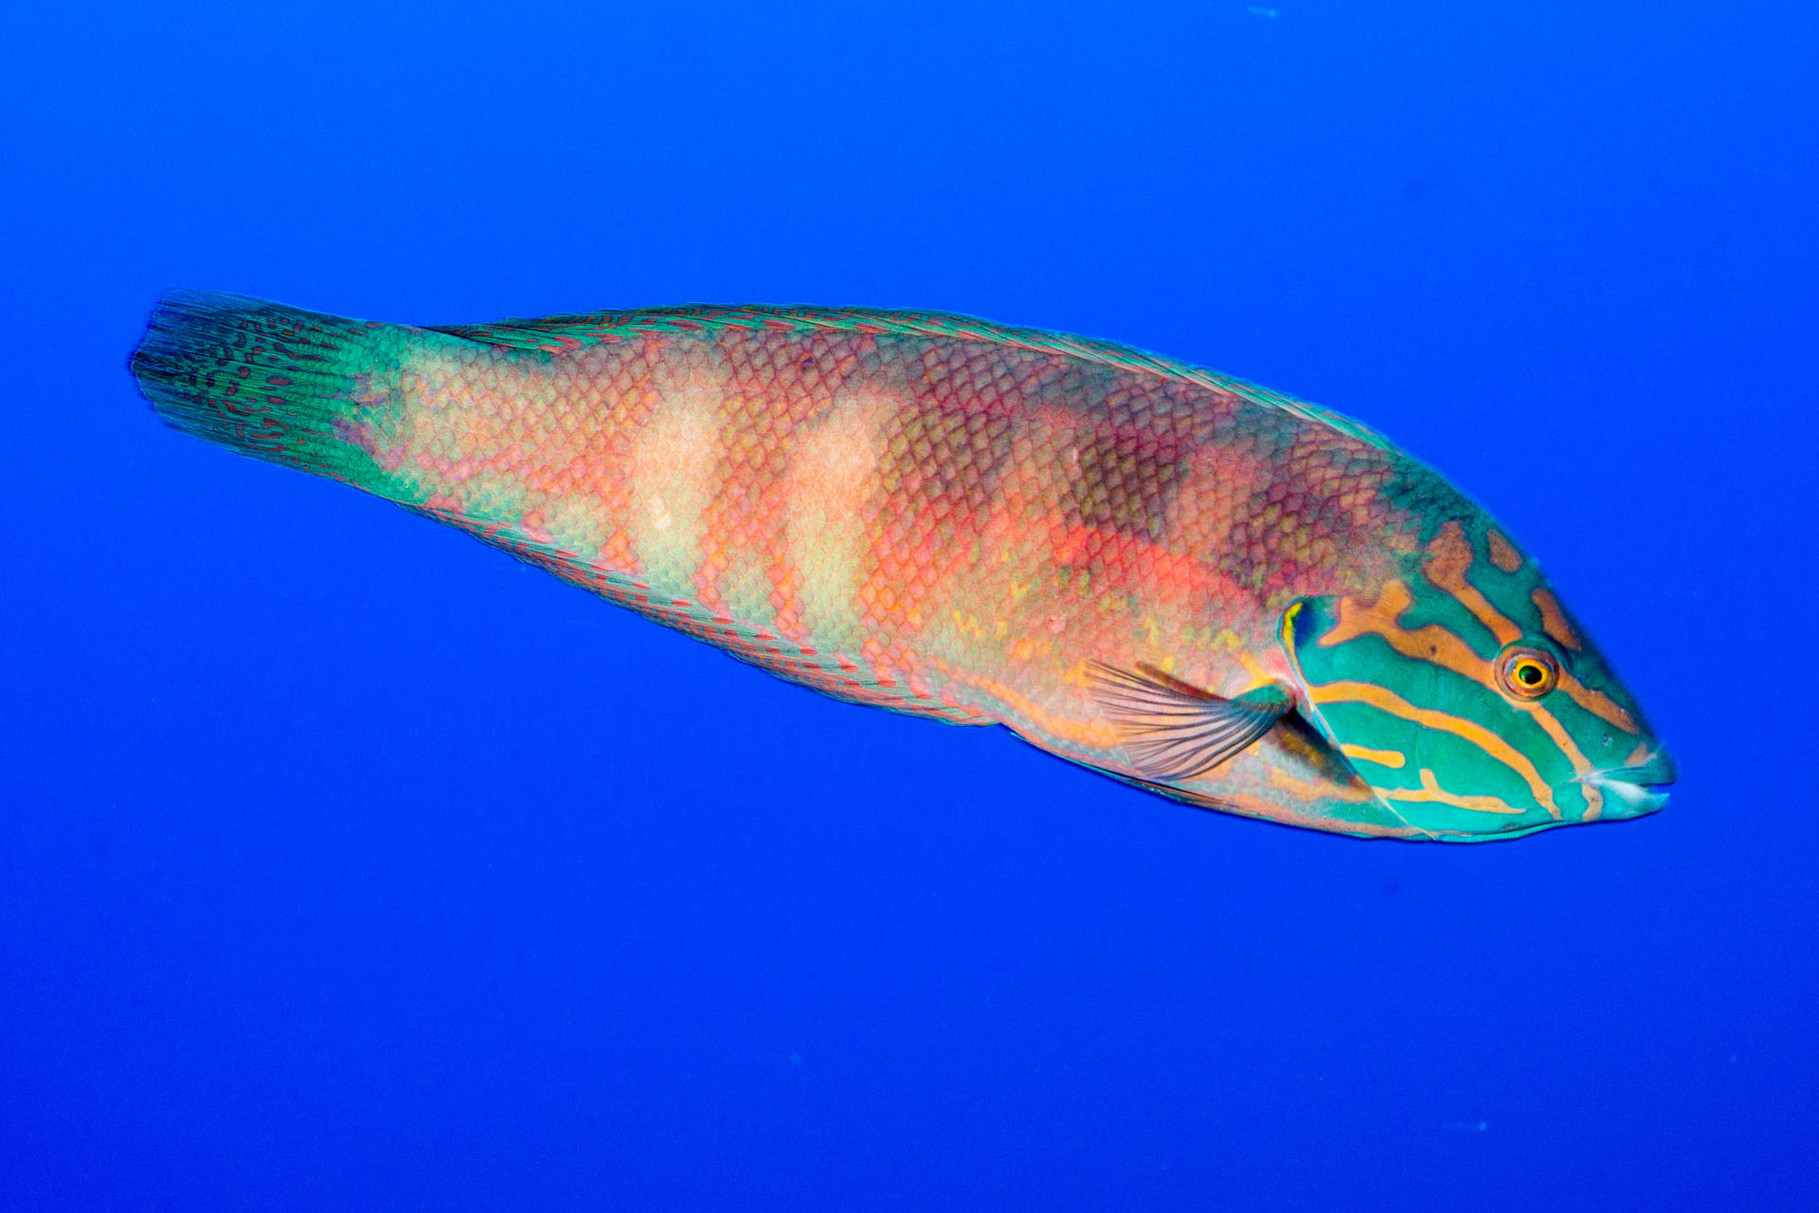 Wrasse (Thalassoma lutescens)